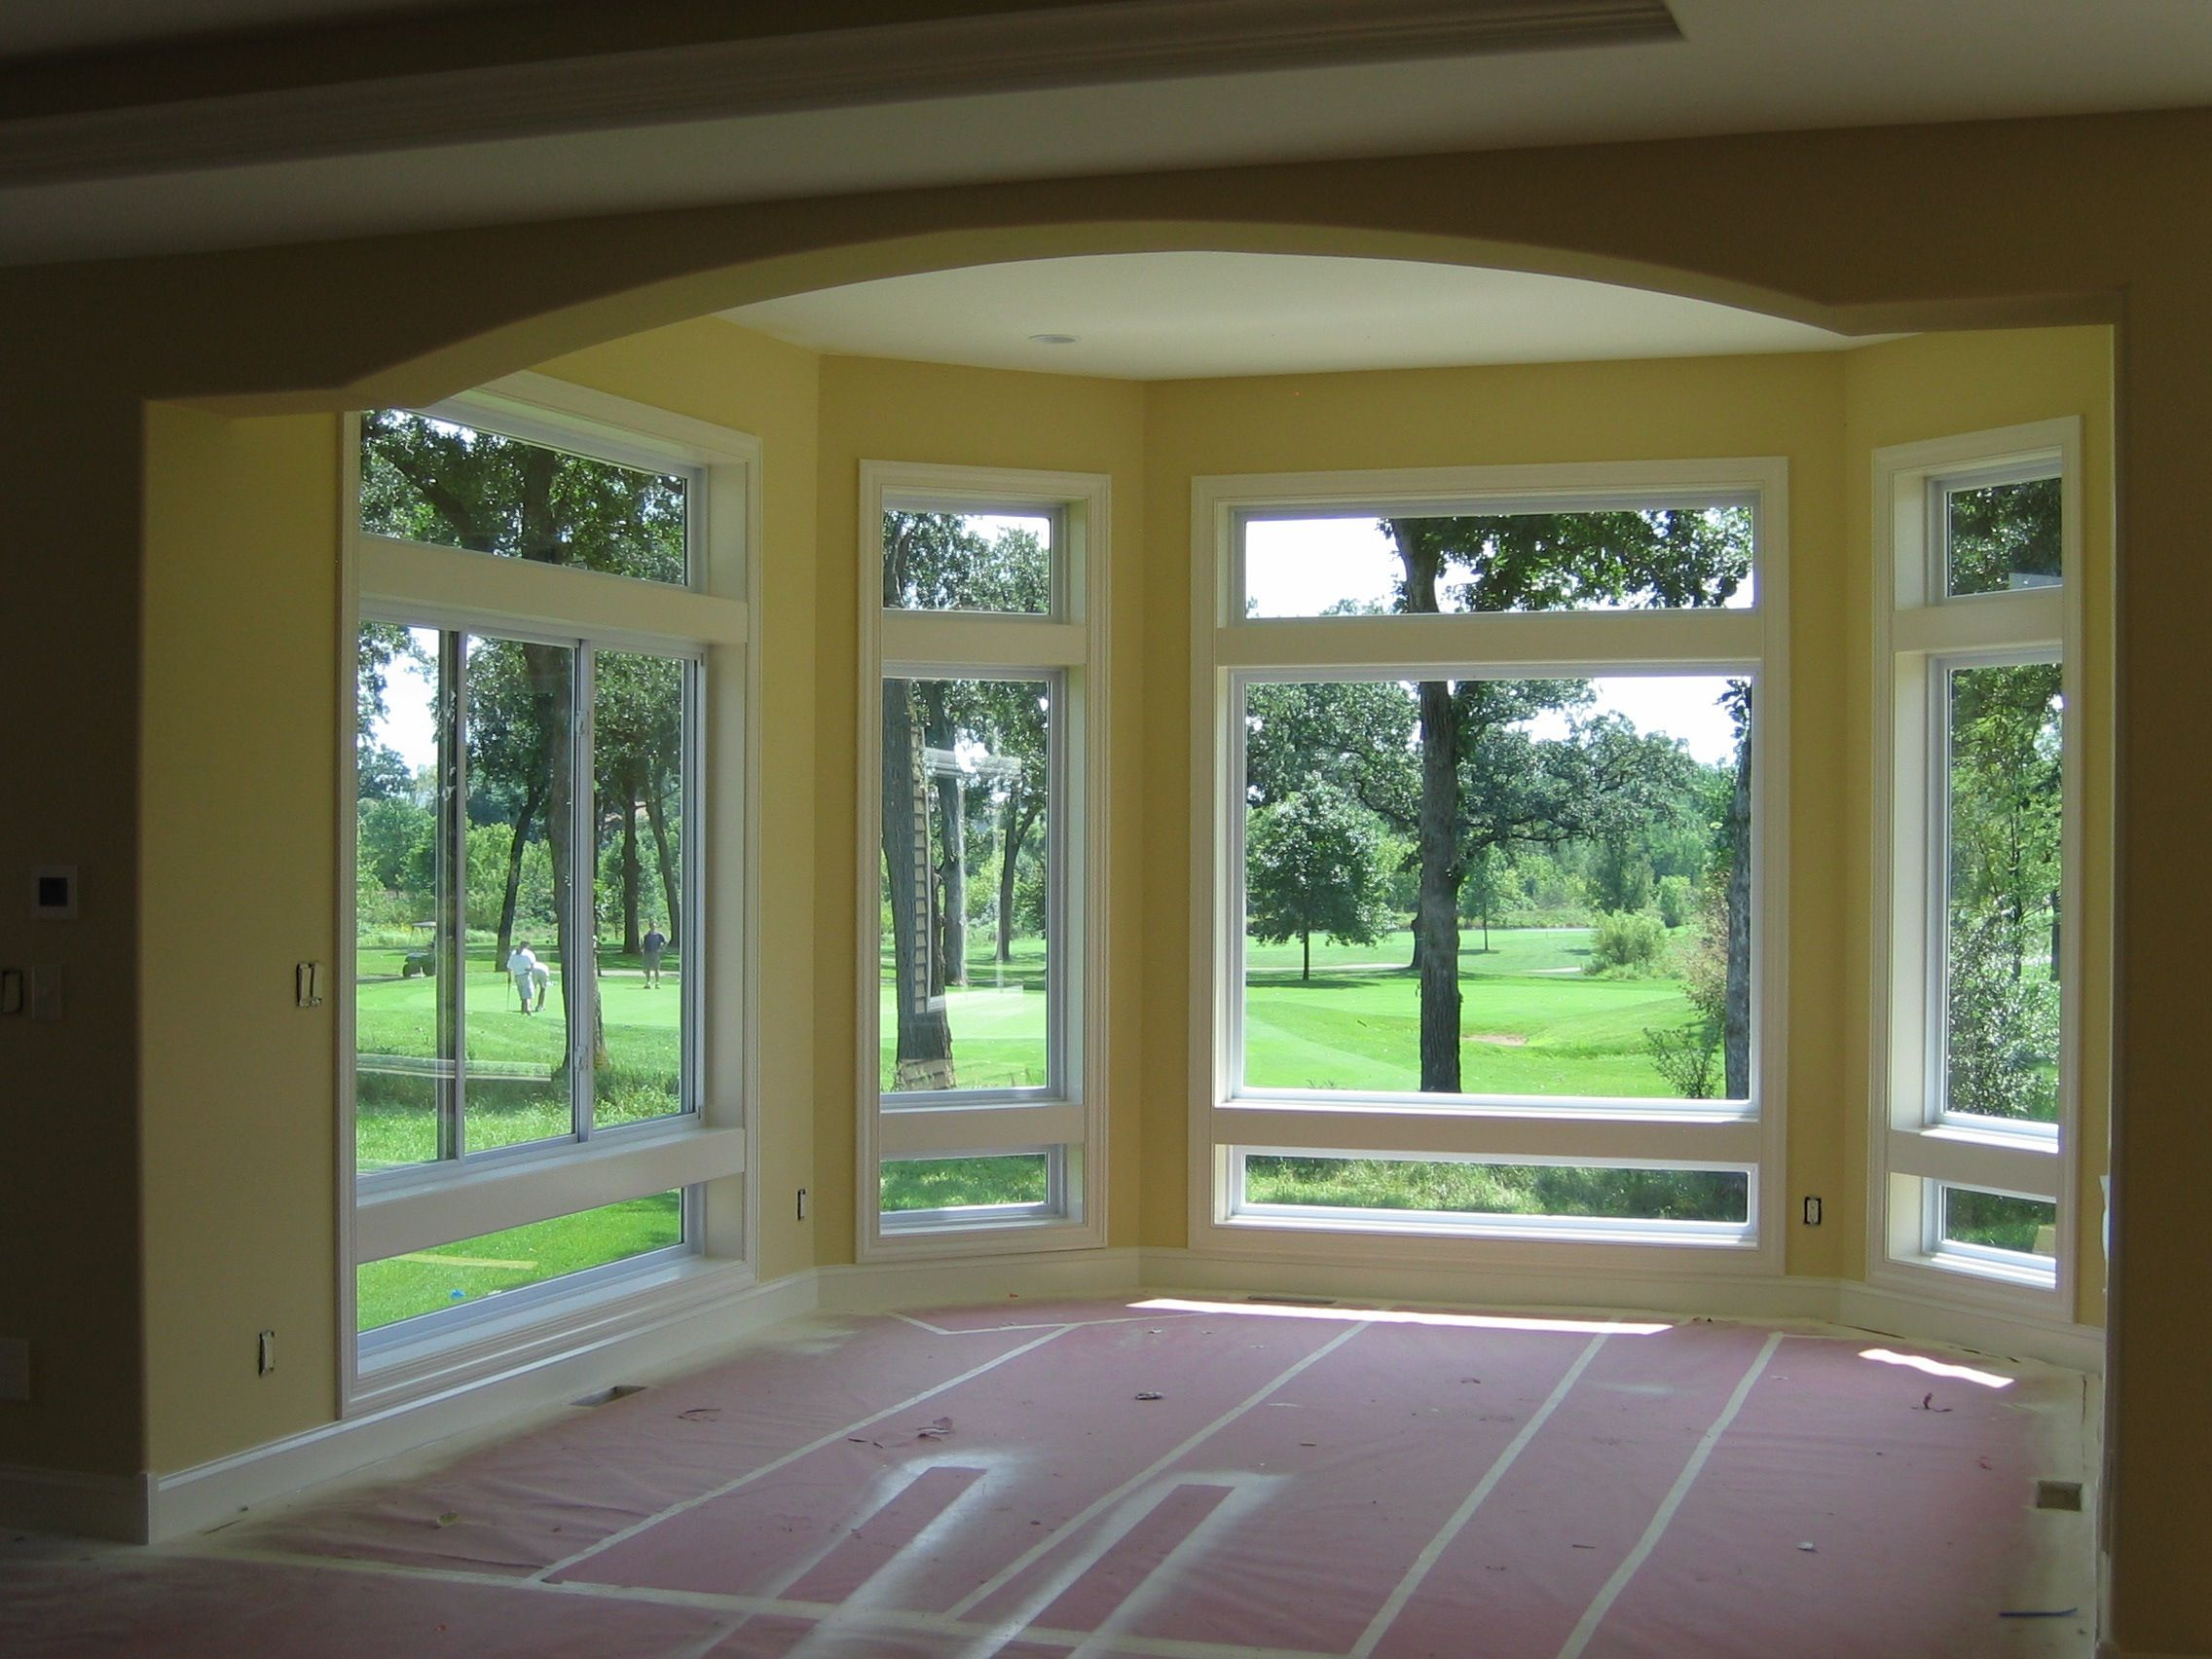 3m S Night Vision 35 Interior View Residential Window